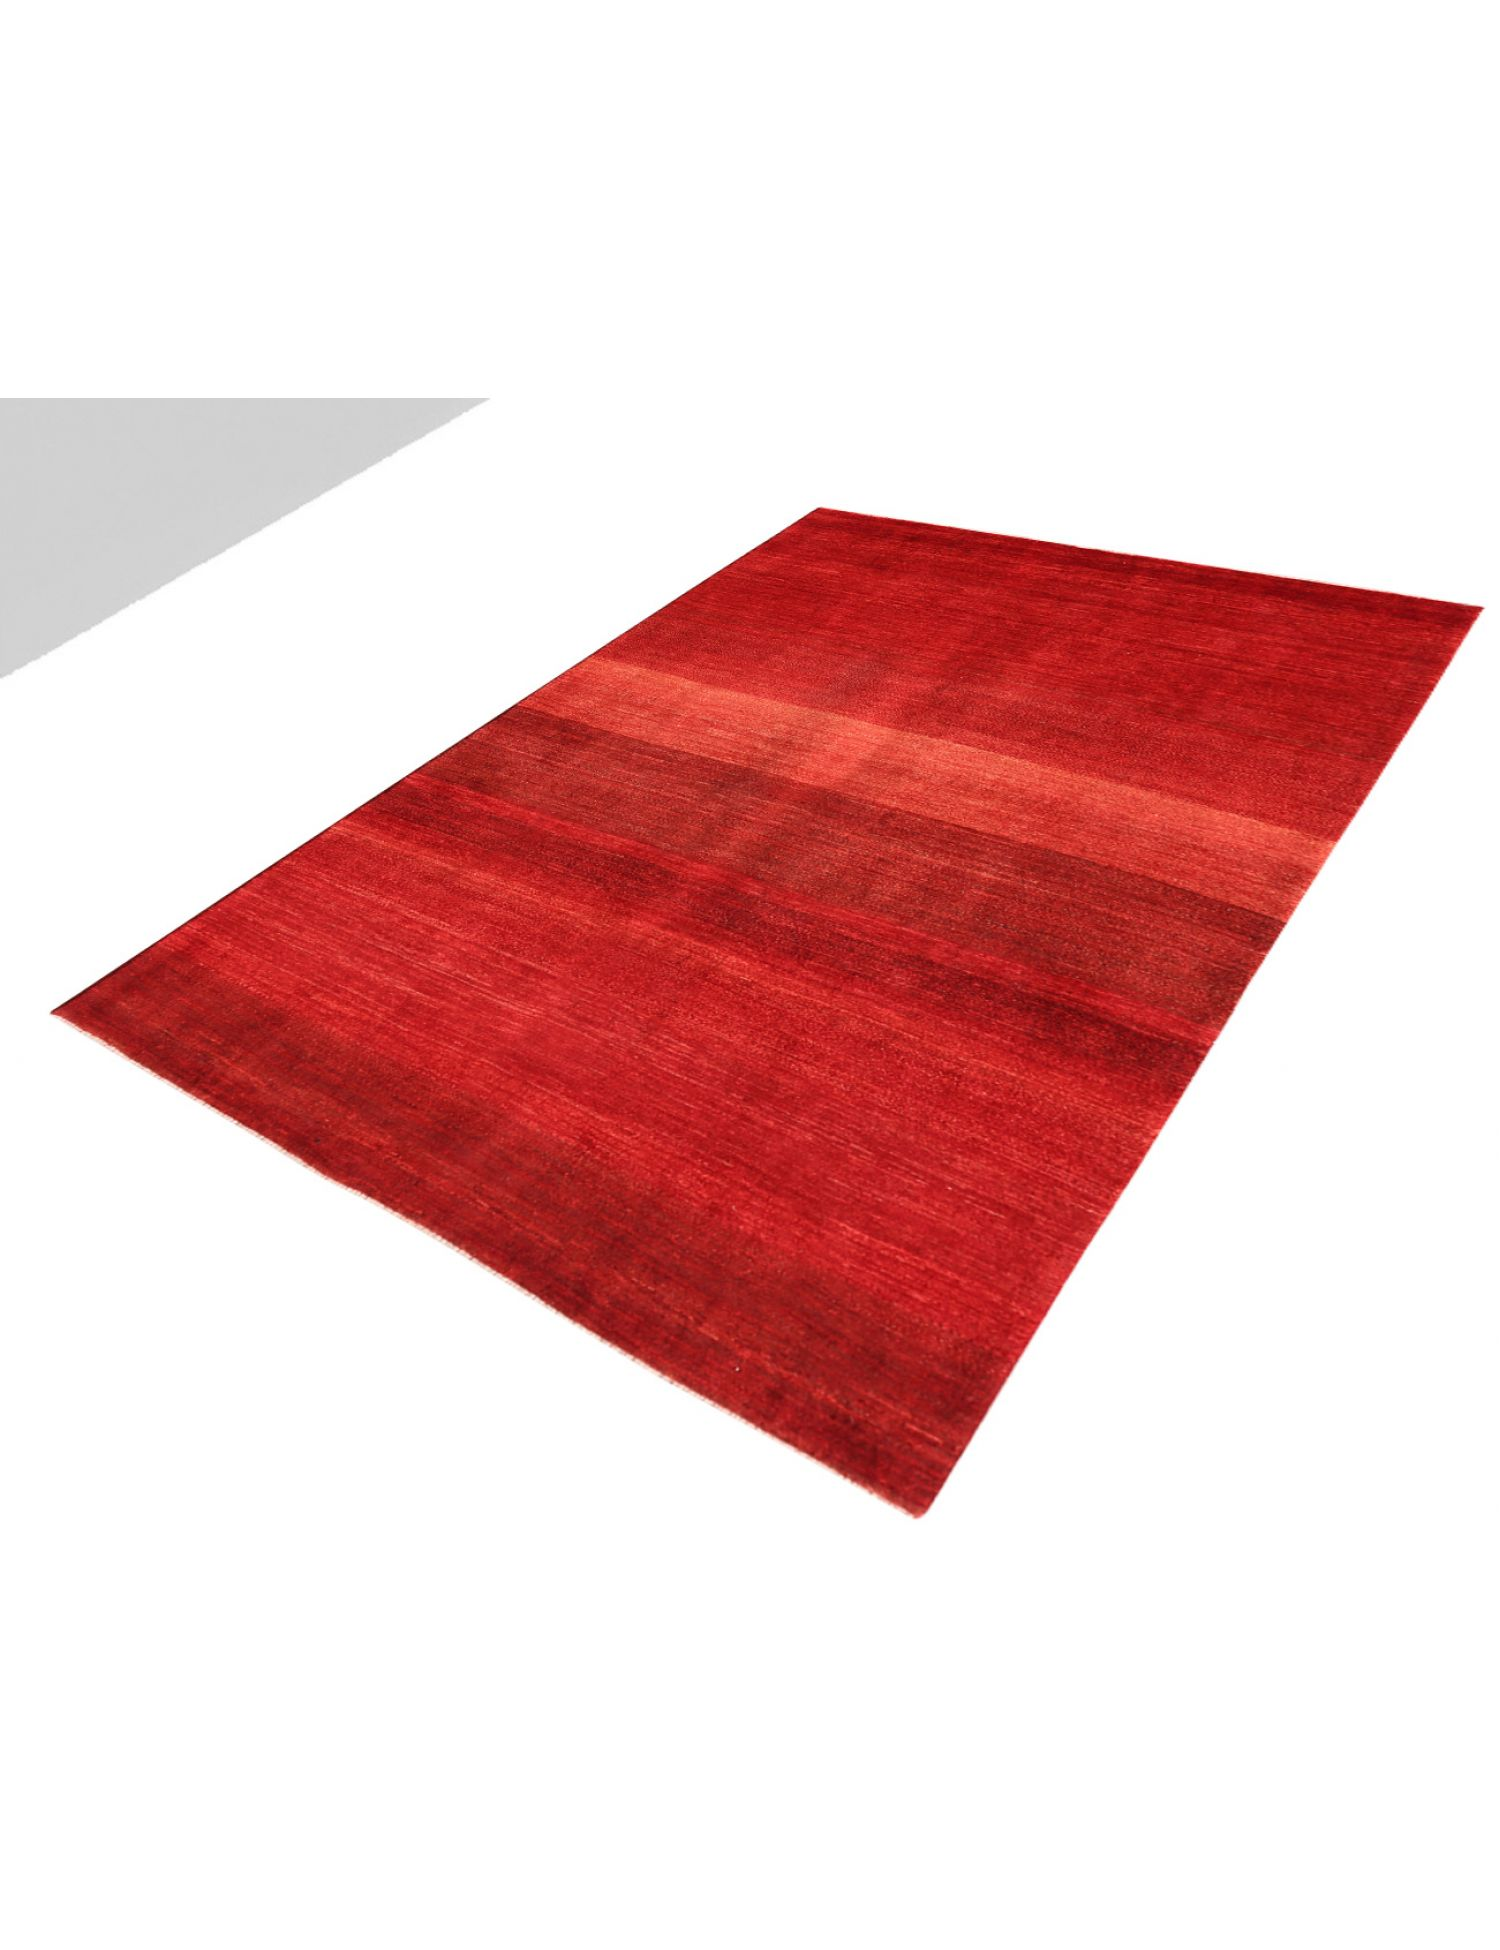 Superior Persian Luribuffs  rot <br/>305 x 202 cm